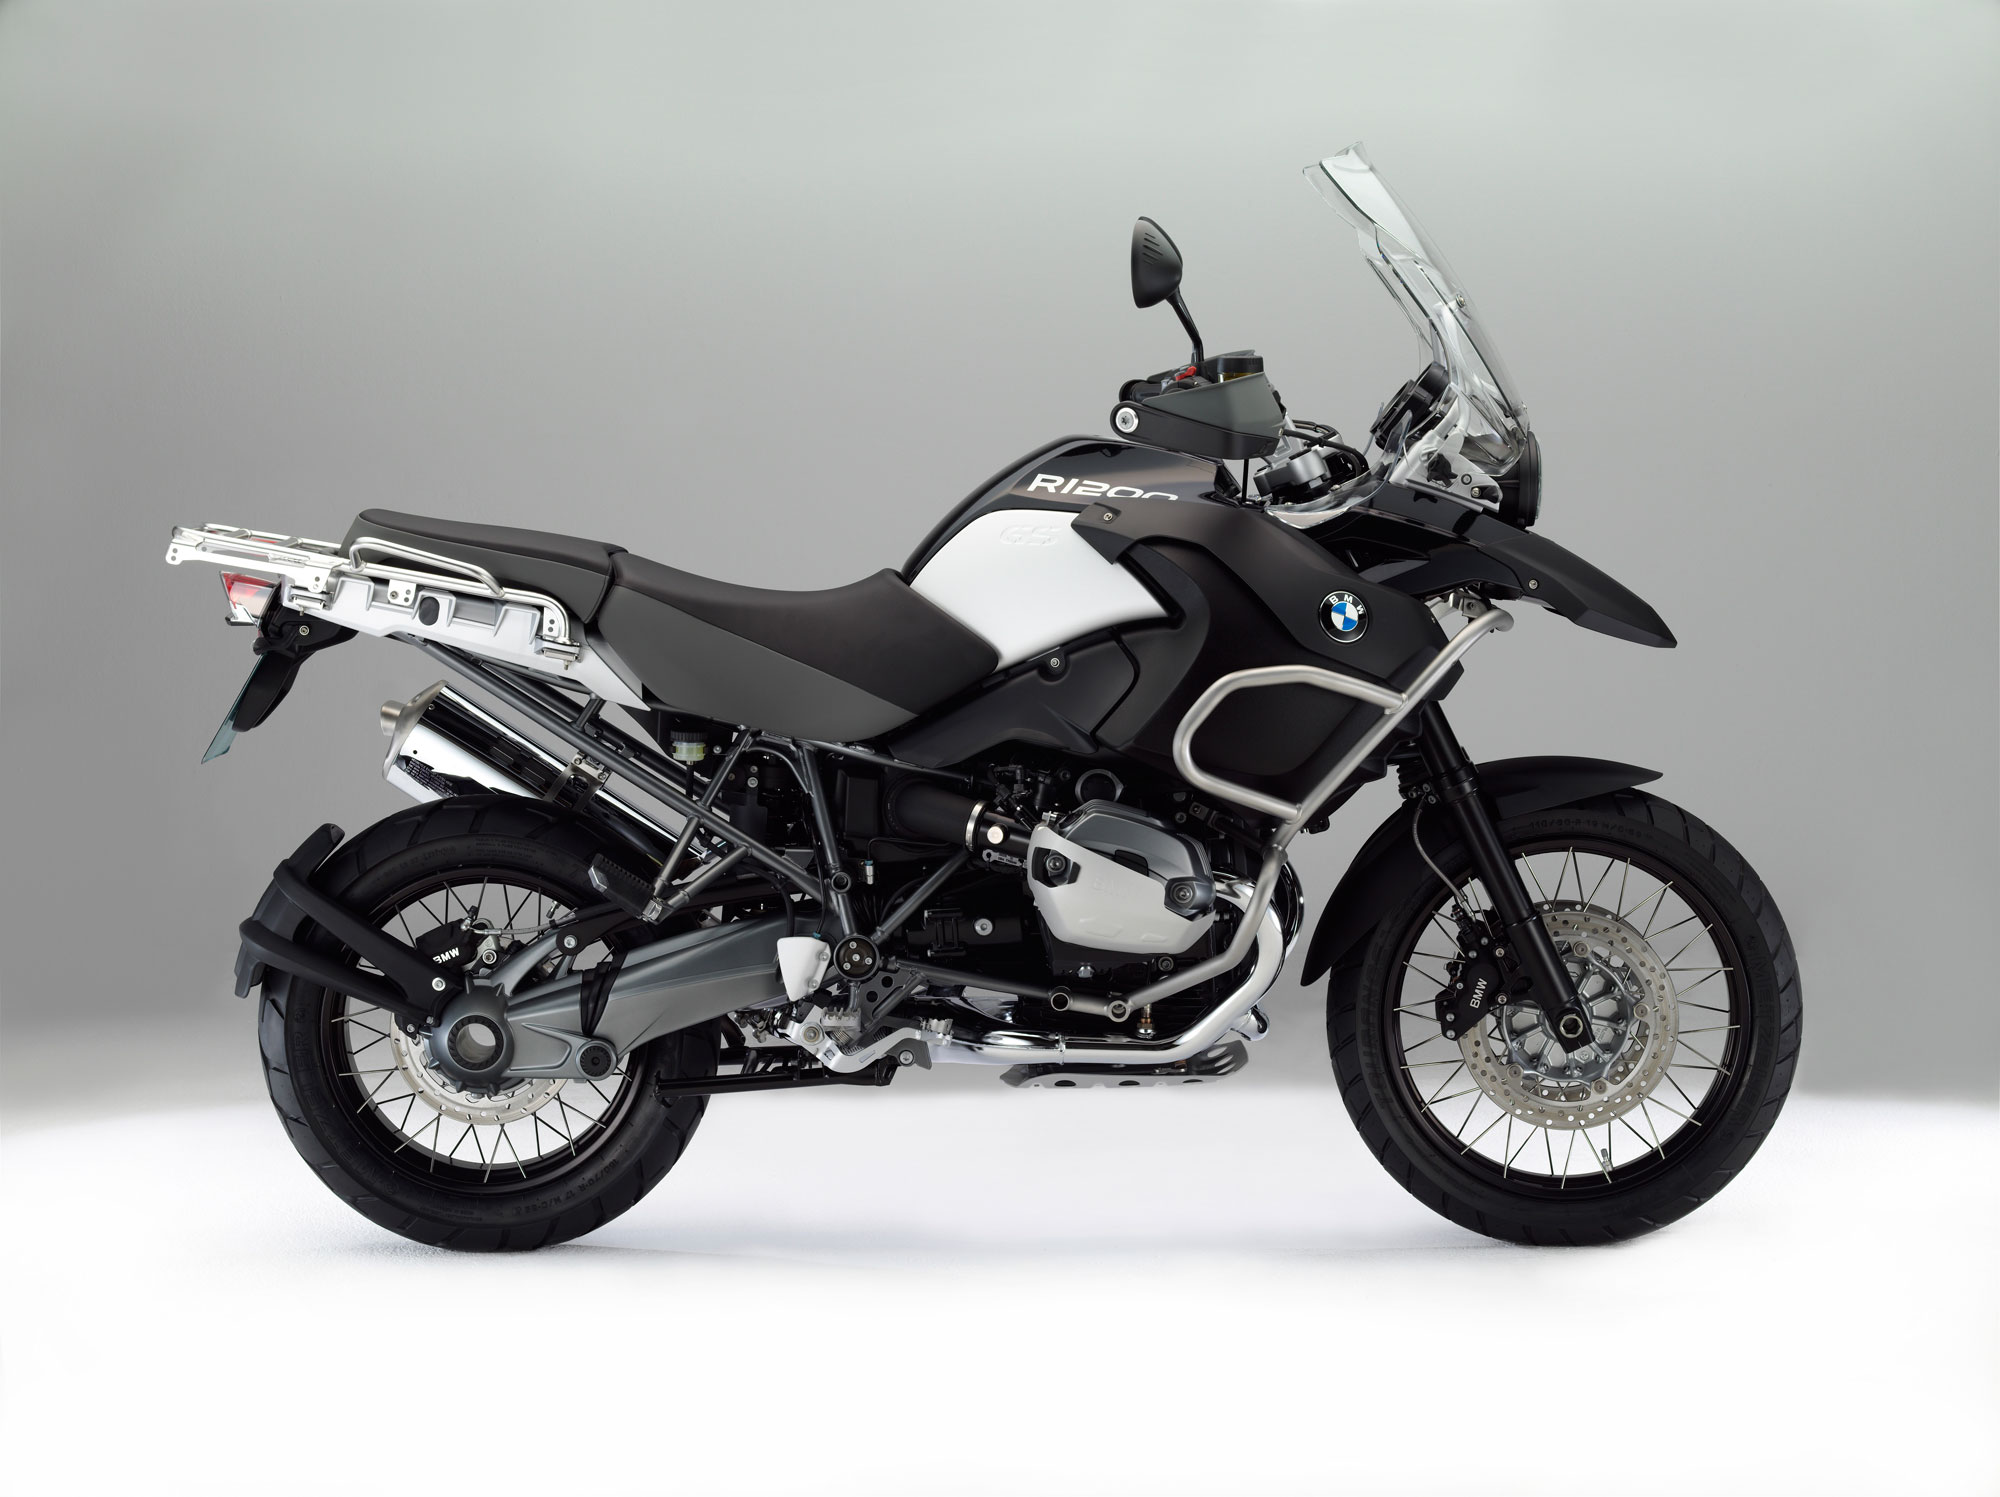 2012 bmw r1200gs adventure triple black review. Black Bedroom Furniture Sets. Home Design Ideas